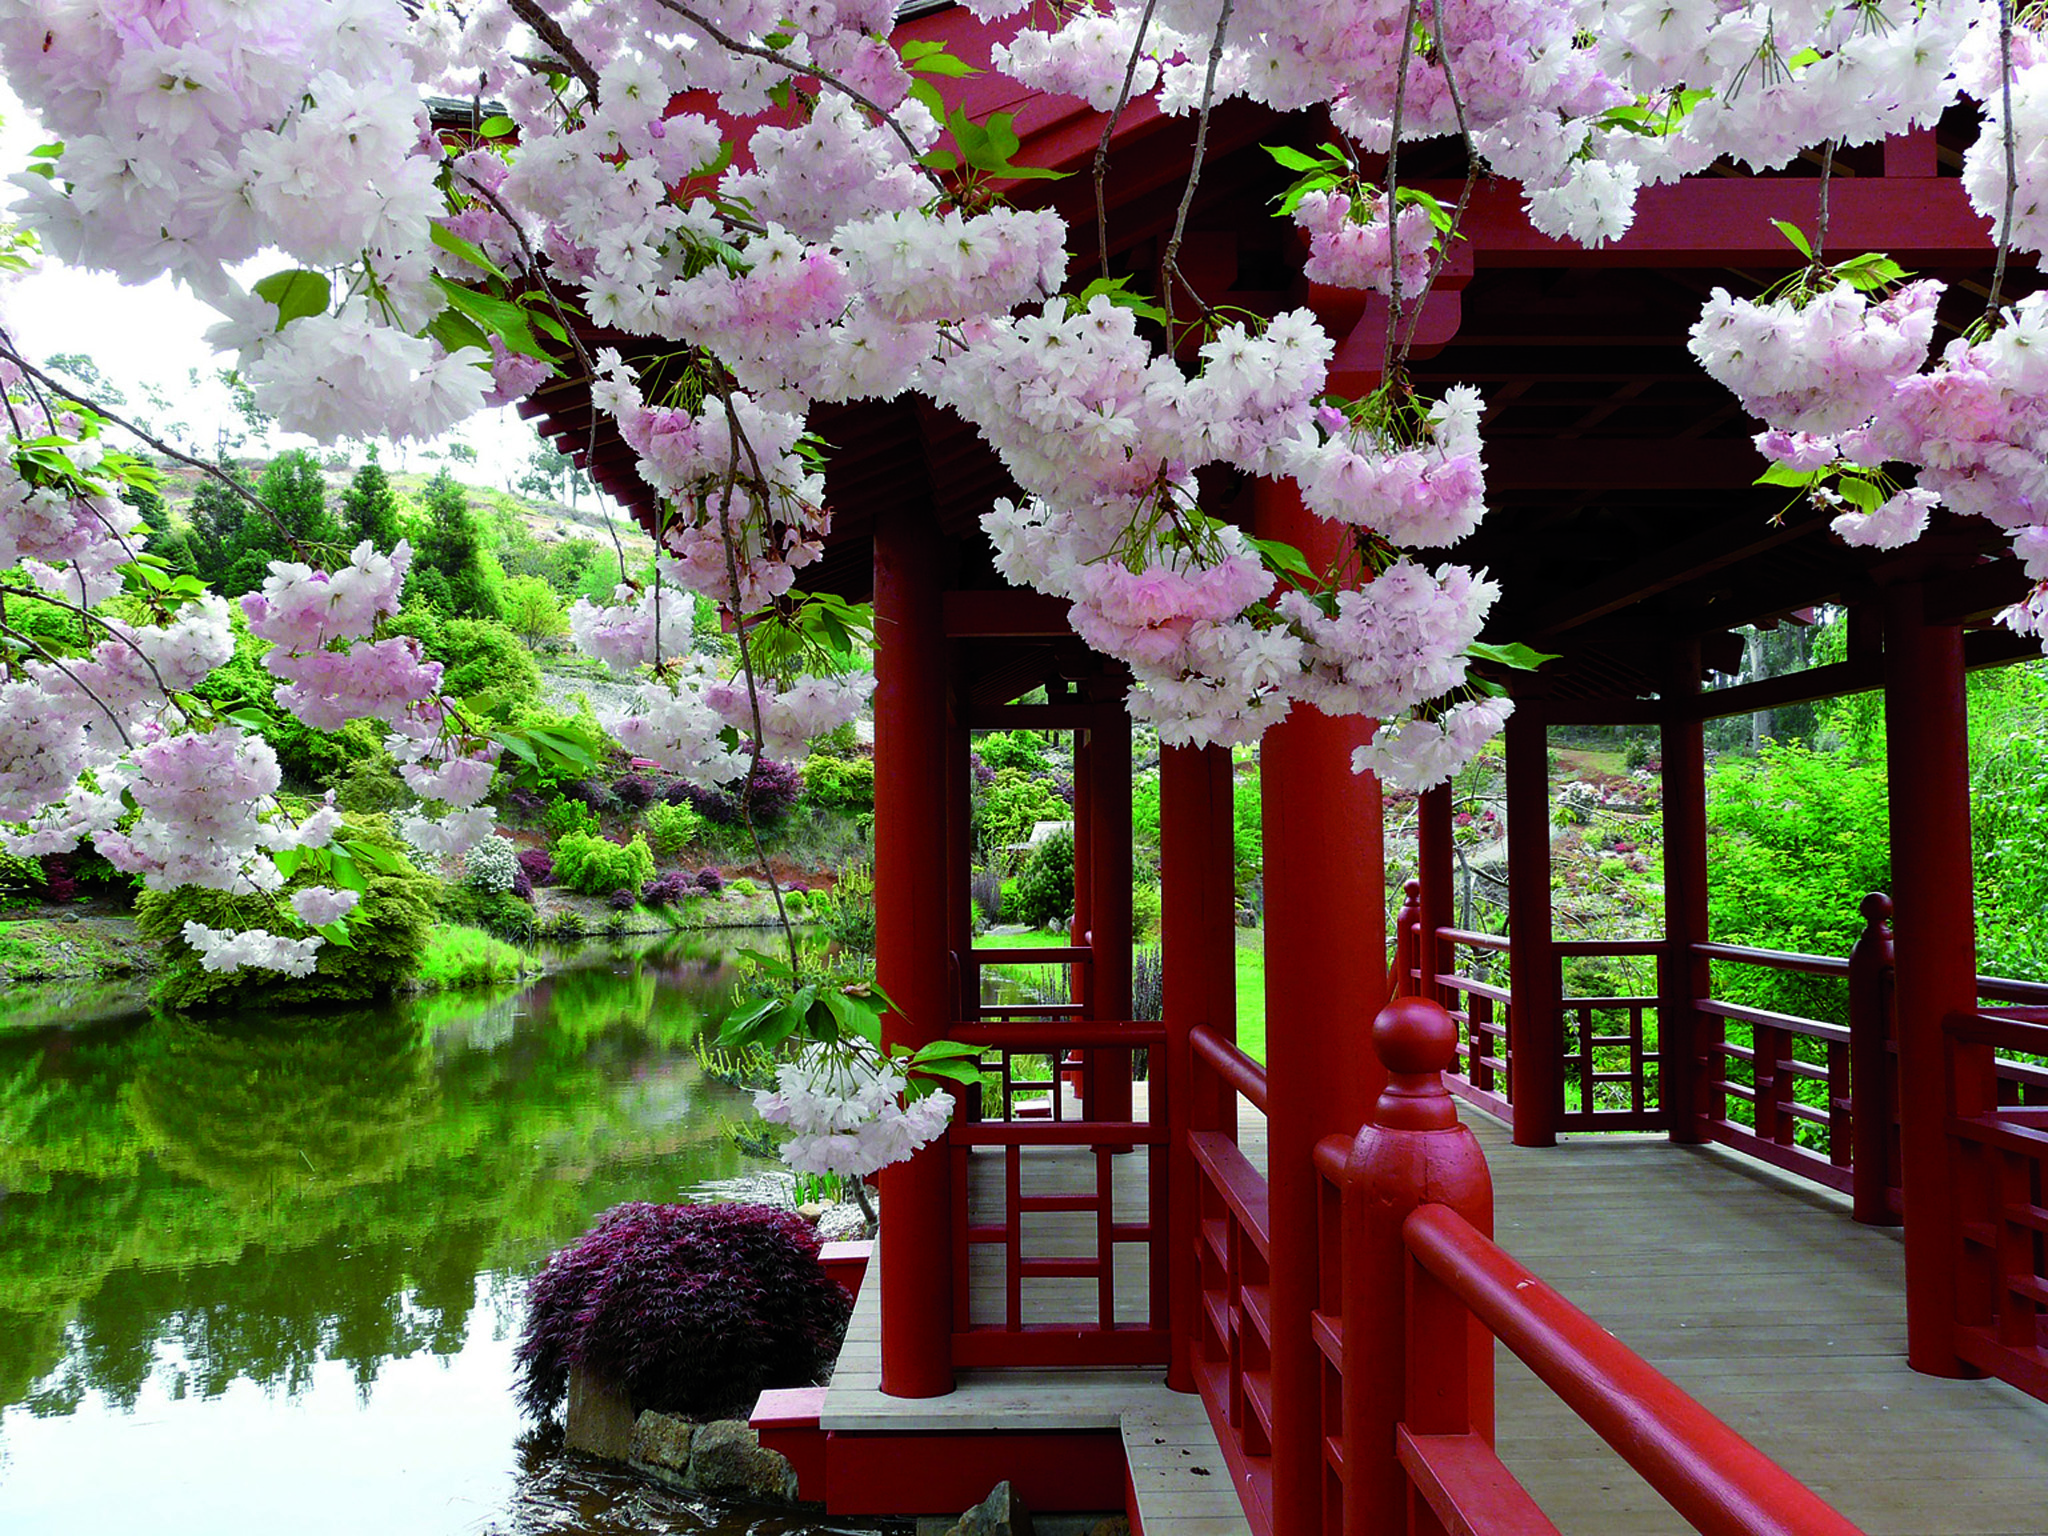 Cherry Blossom Festival - Adult $15 Conc. $12Children Freeemuvalleyrhodo.comEmailPh: 03 6433 1805